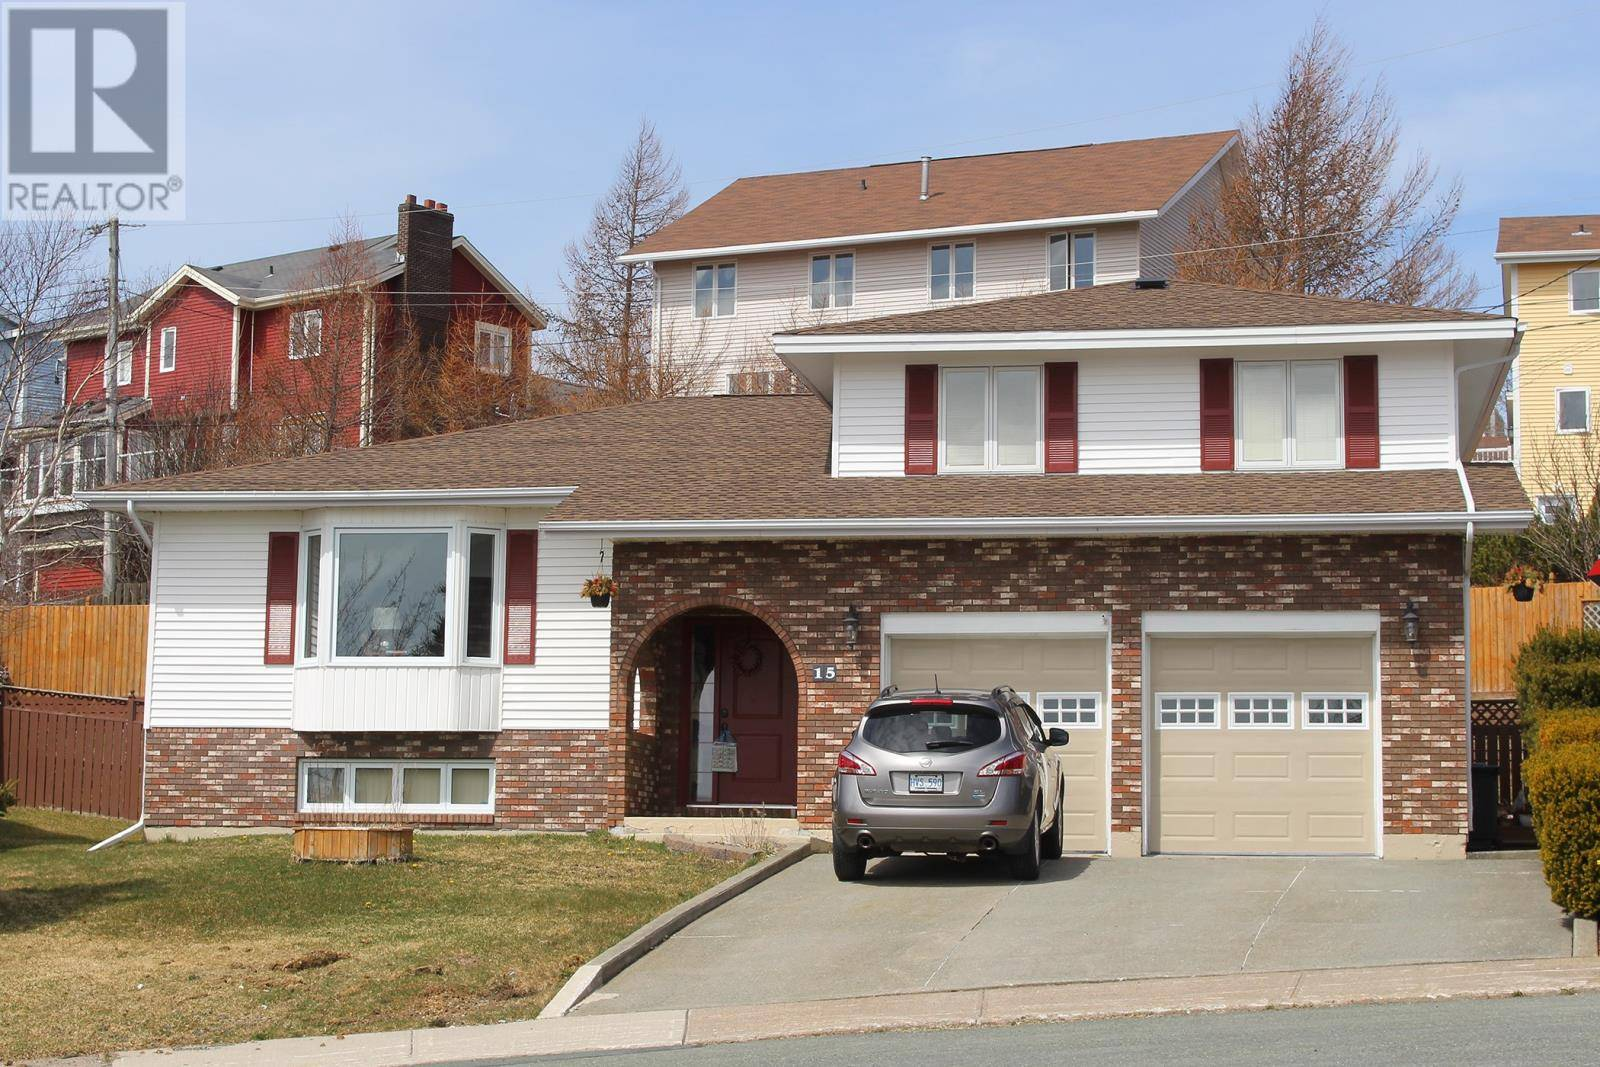 House for sale at 15 Tracey Pl St. John's Newfoundland - MLS: 1212178